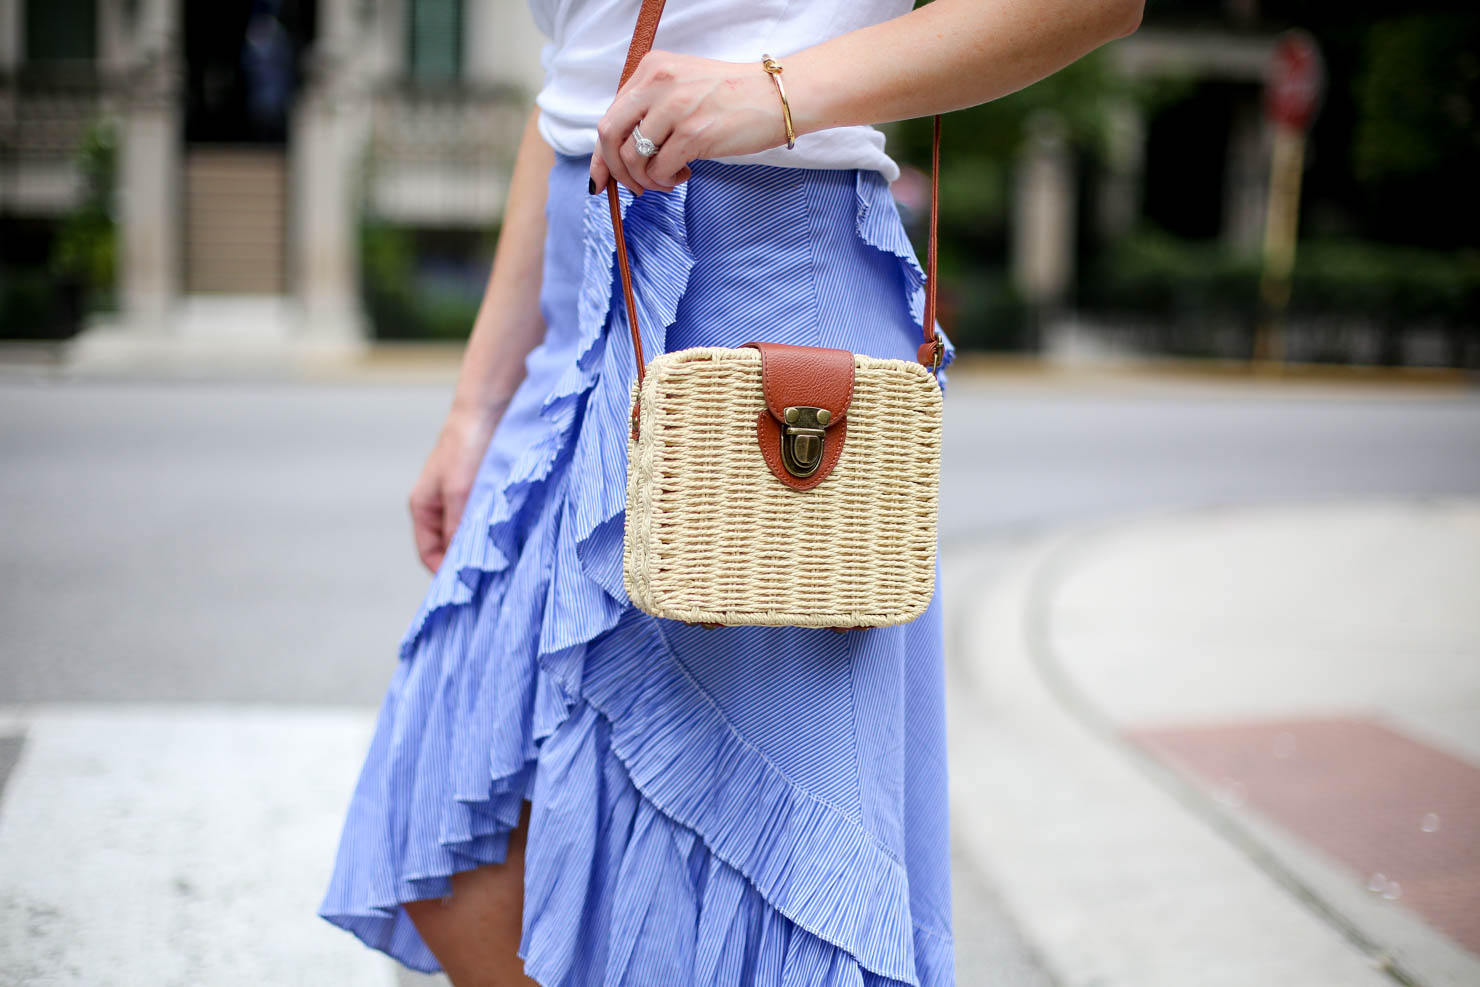 aviator nation, frilled skirt, ruffle tiered frill hem skirt, blue stripe the most feminine skirt midi skirt, casual meets dressy frills and a white tee, favorite summer outfit